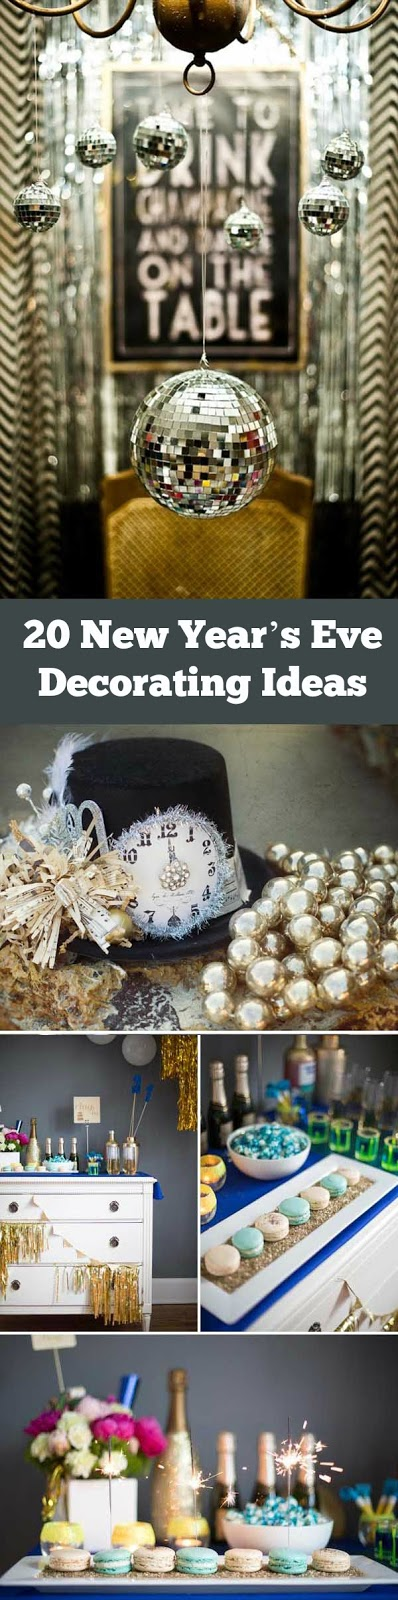 6 New Year's Eve Decorating Ideas